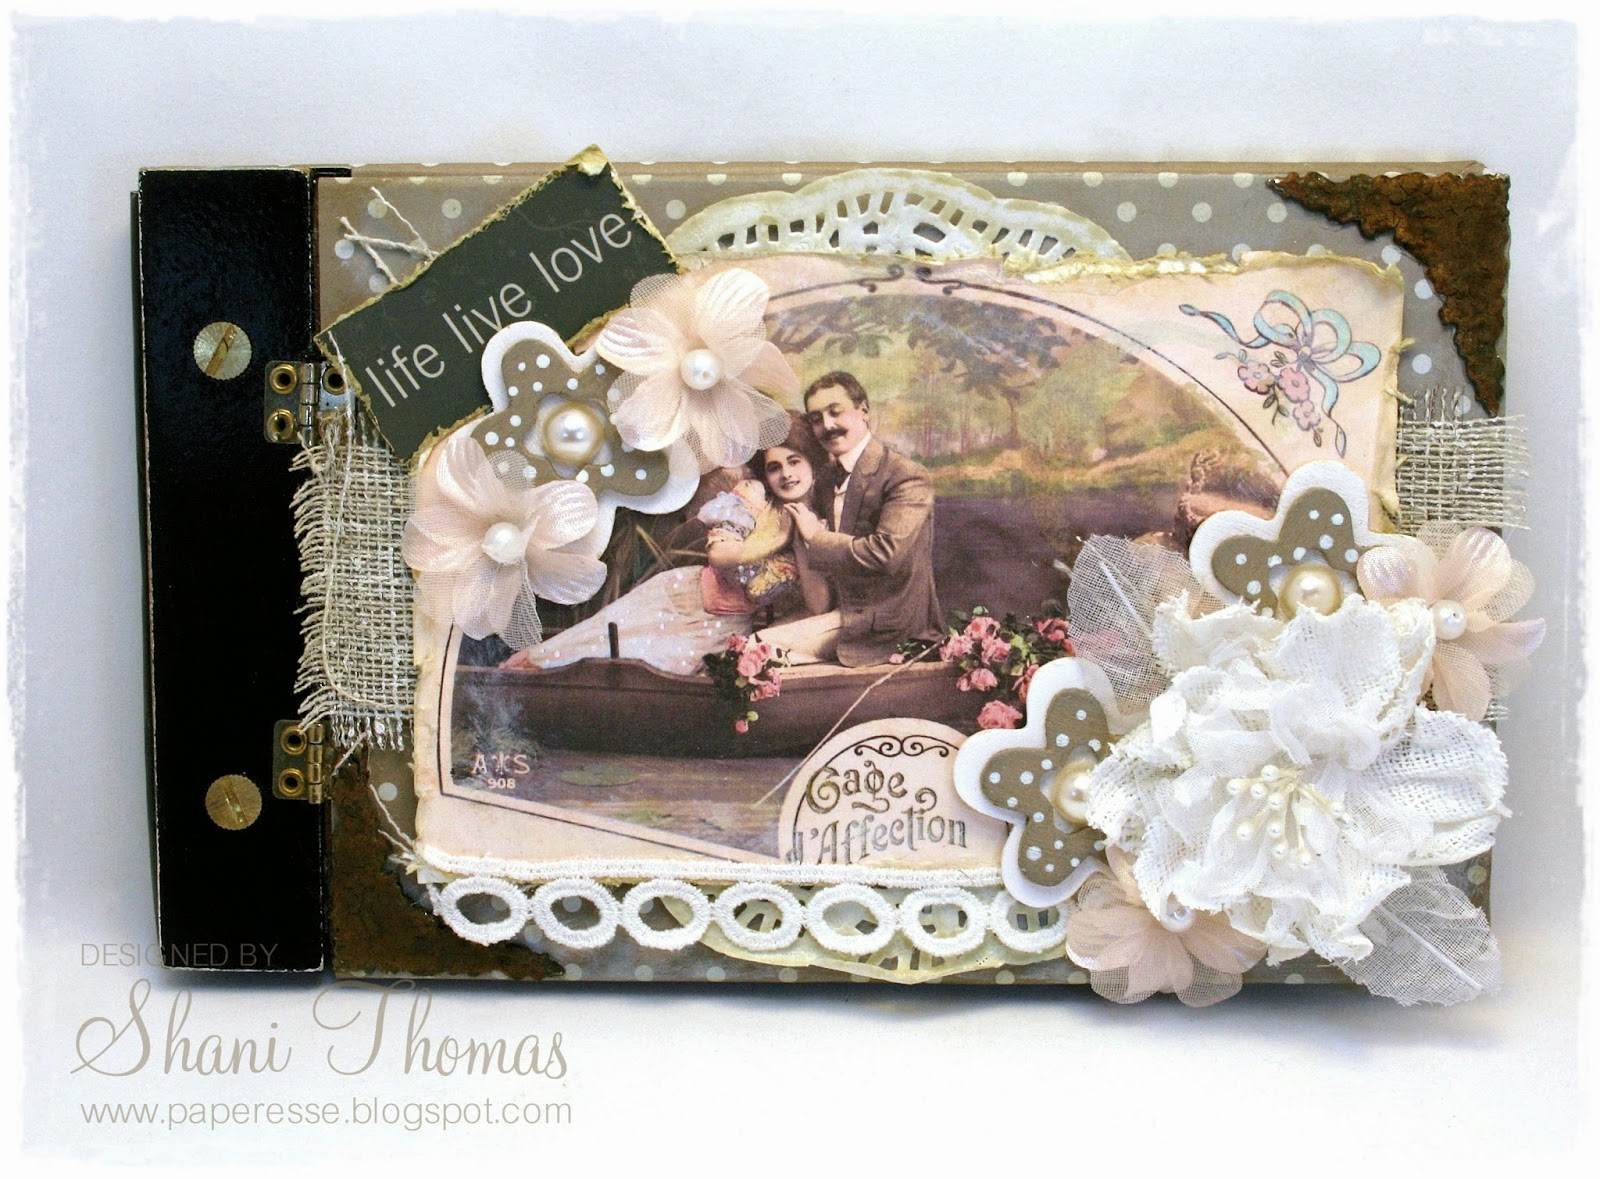 Shabby Look Paperesse Altered Photo Album With Vintage Shabby Look